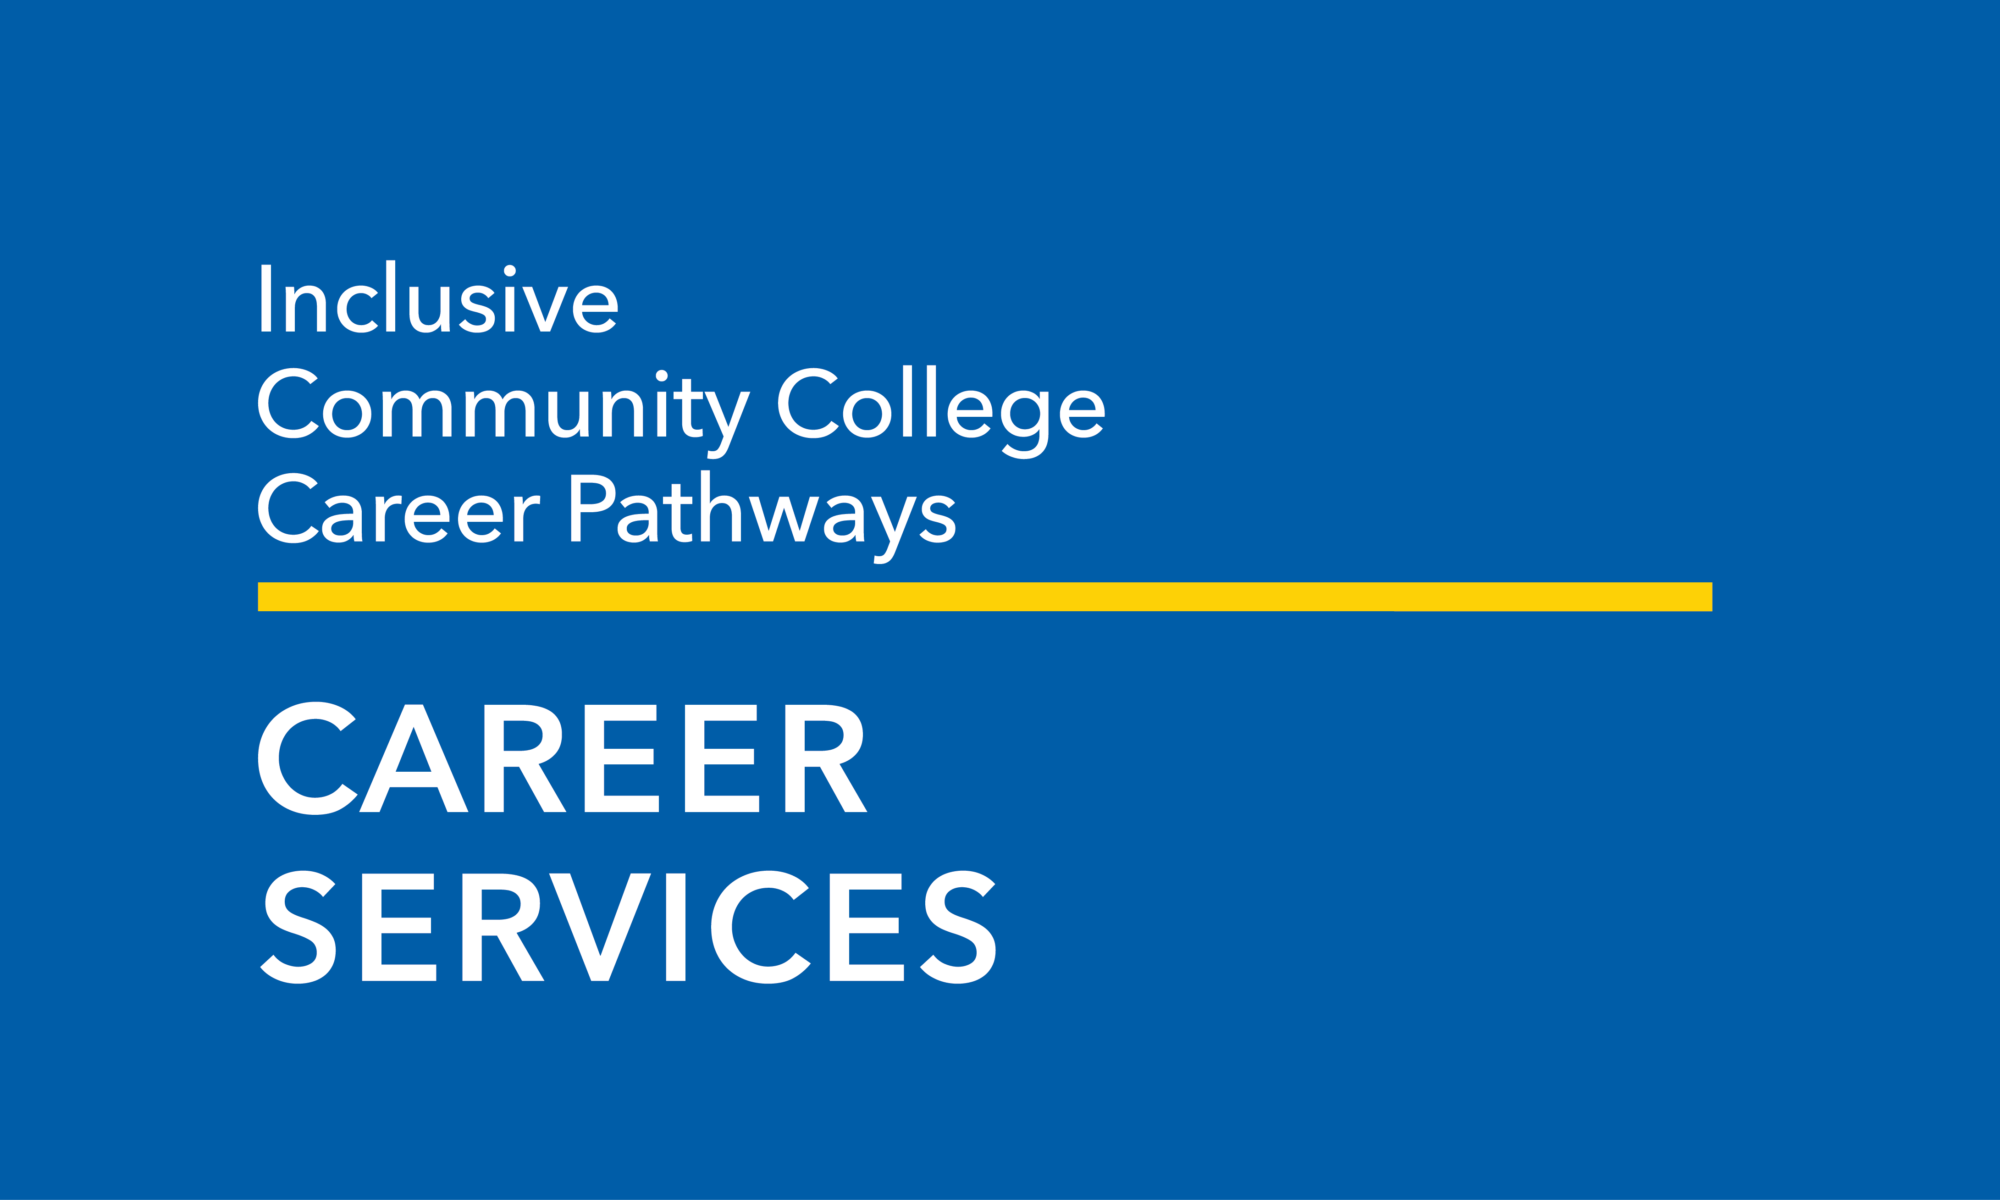 Inclusive Community College Career Pathways: Career Services